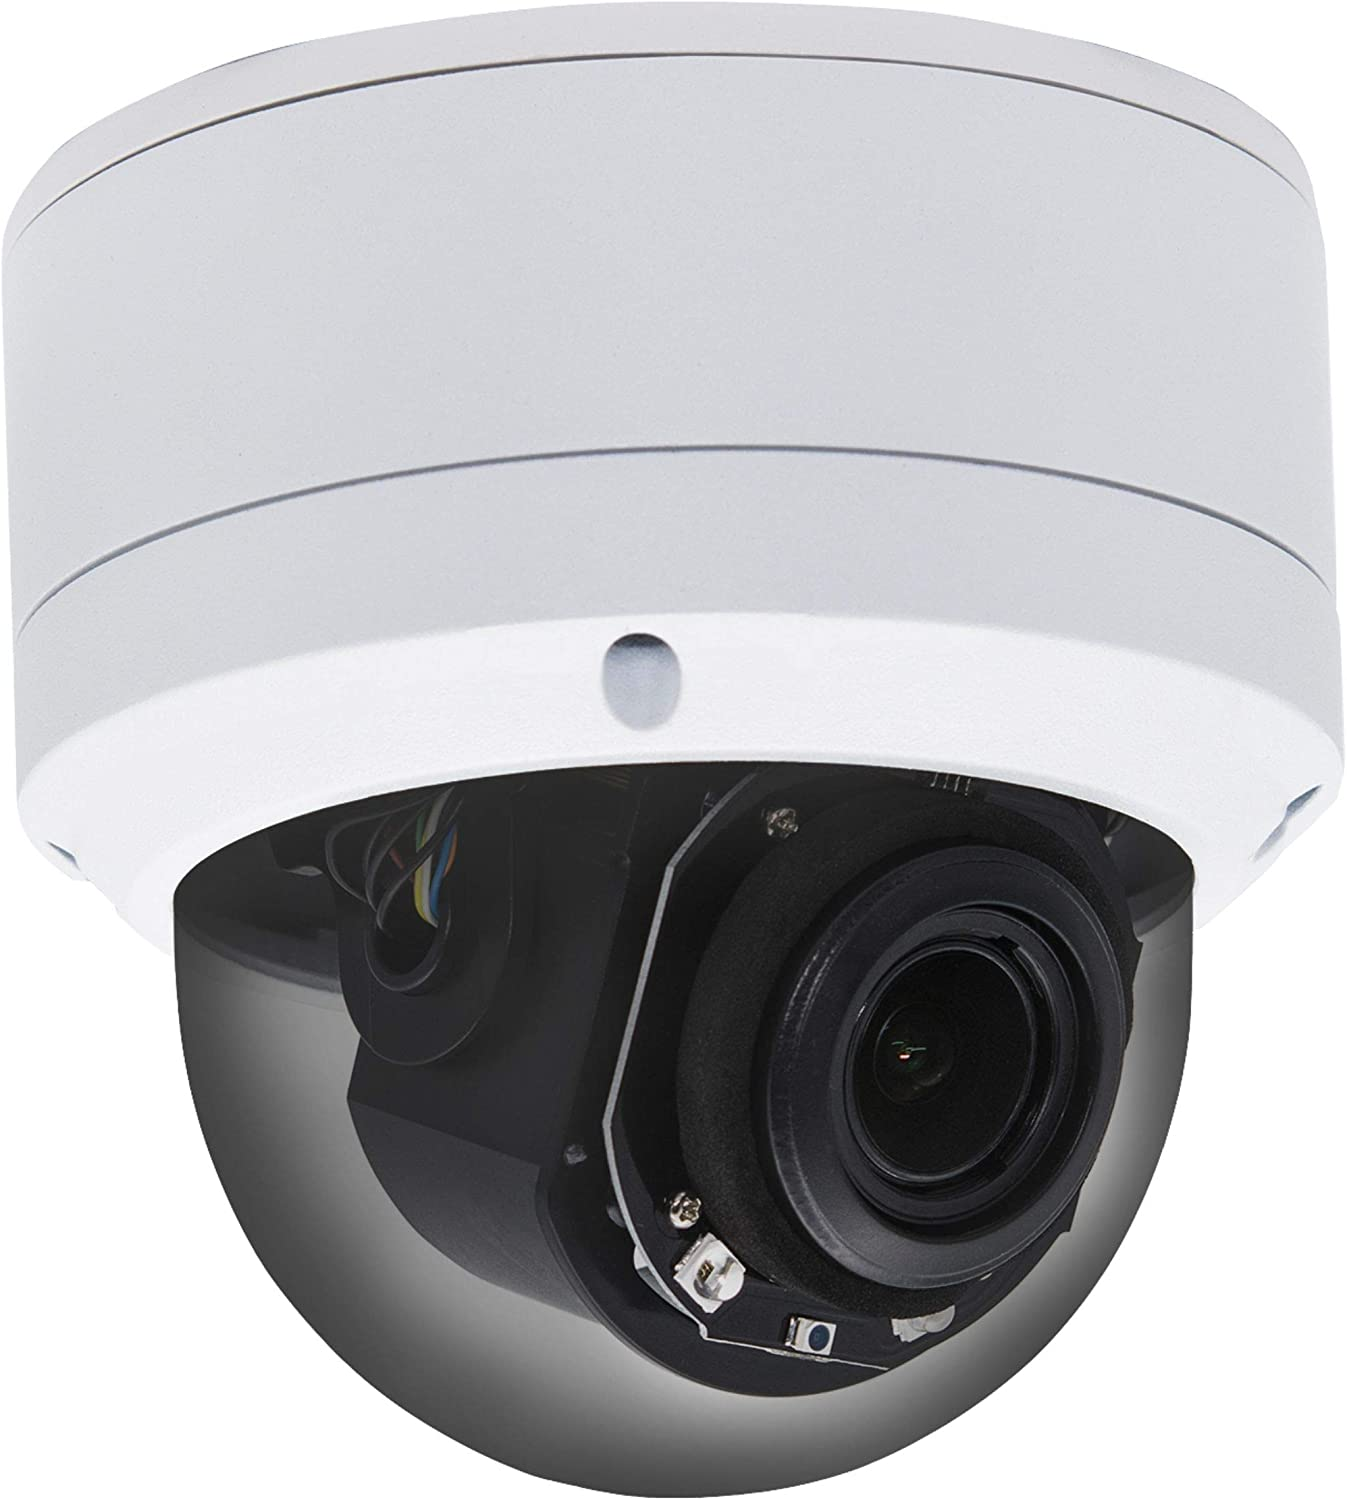 (Hikvision Compatible) Inwerang HD 1080P Outdoor/Indoor POE IP PTZ 2MP Dome Security Camera, 2.7-13.5mm Motorized 5X Zoom,Pan:0~355°/Tilt:0~90°, 98ft Night Vision, Audio in,Motion,Onvif